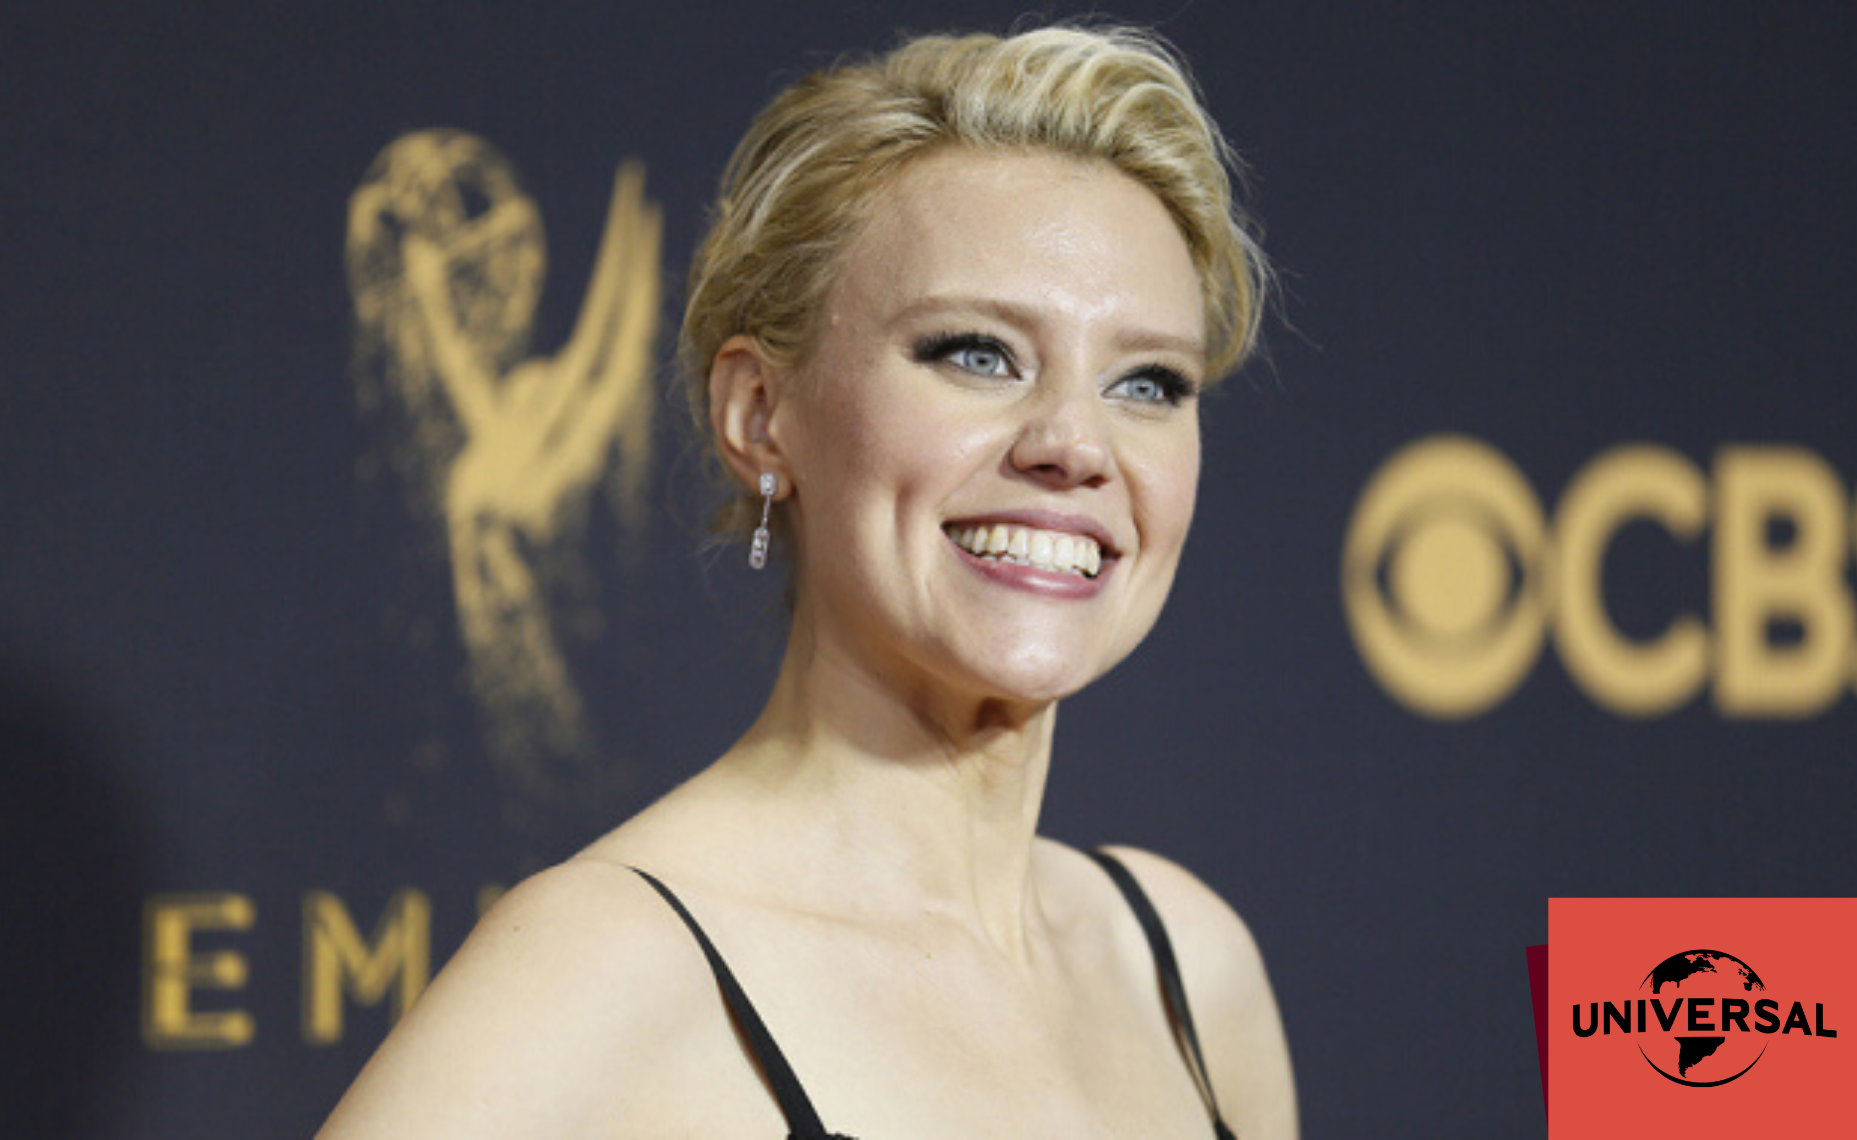 lunch witch, universal pictures, kate mckinnon, diversity, hollywood, inclusive, marketing, upcoming productions, tv shows, films